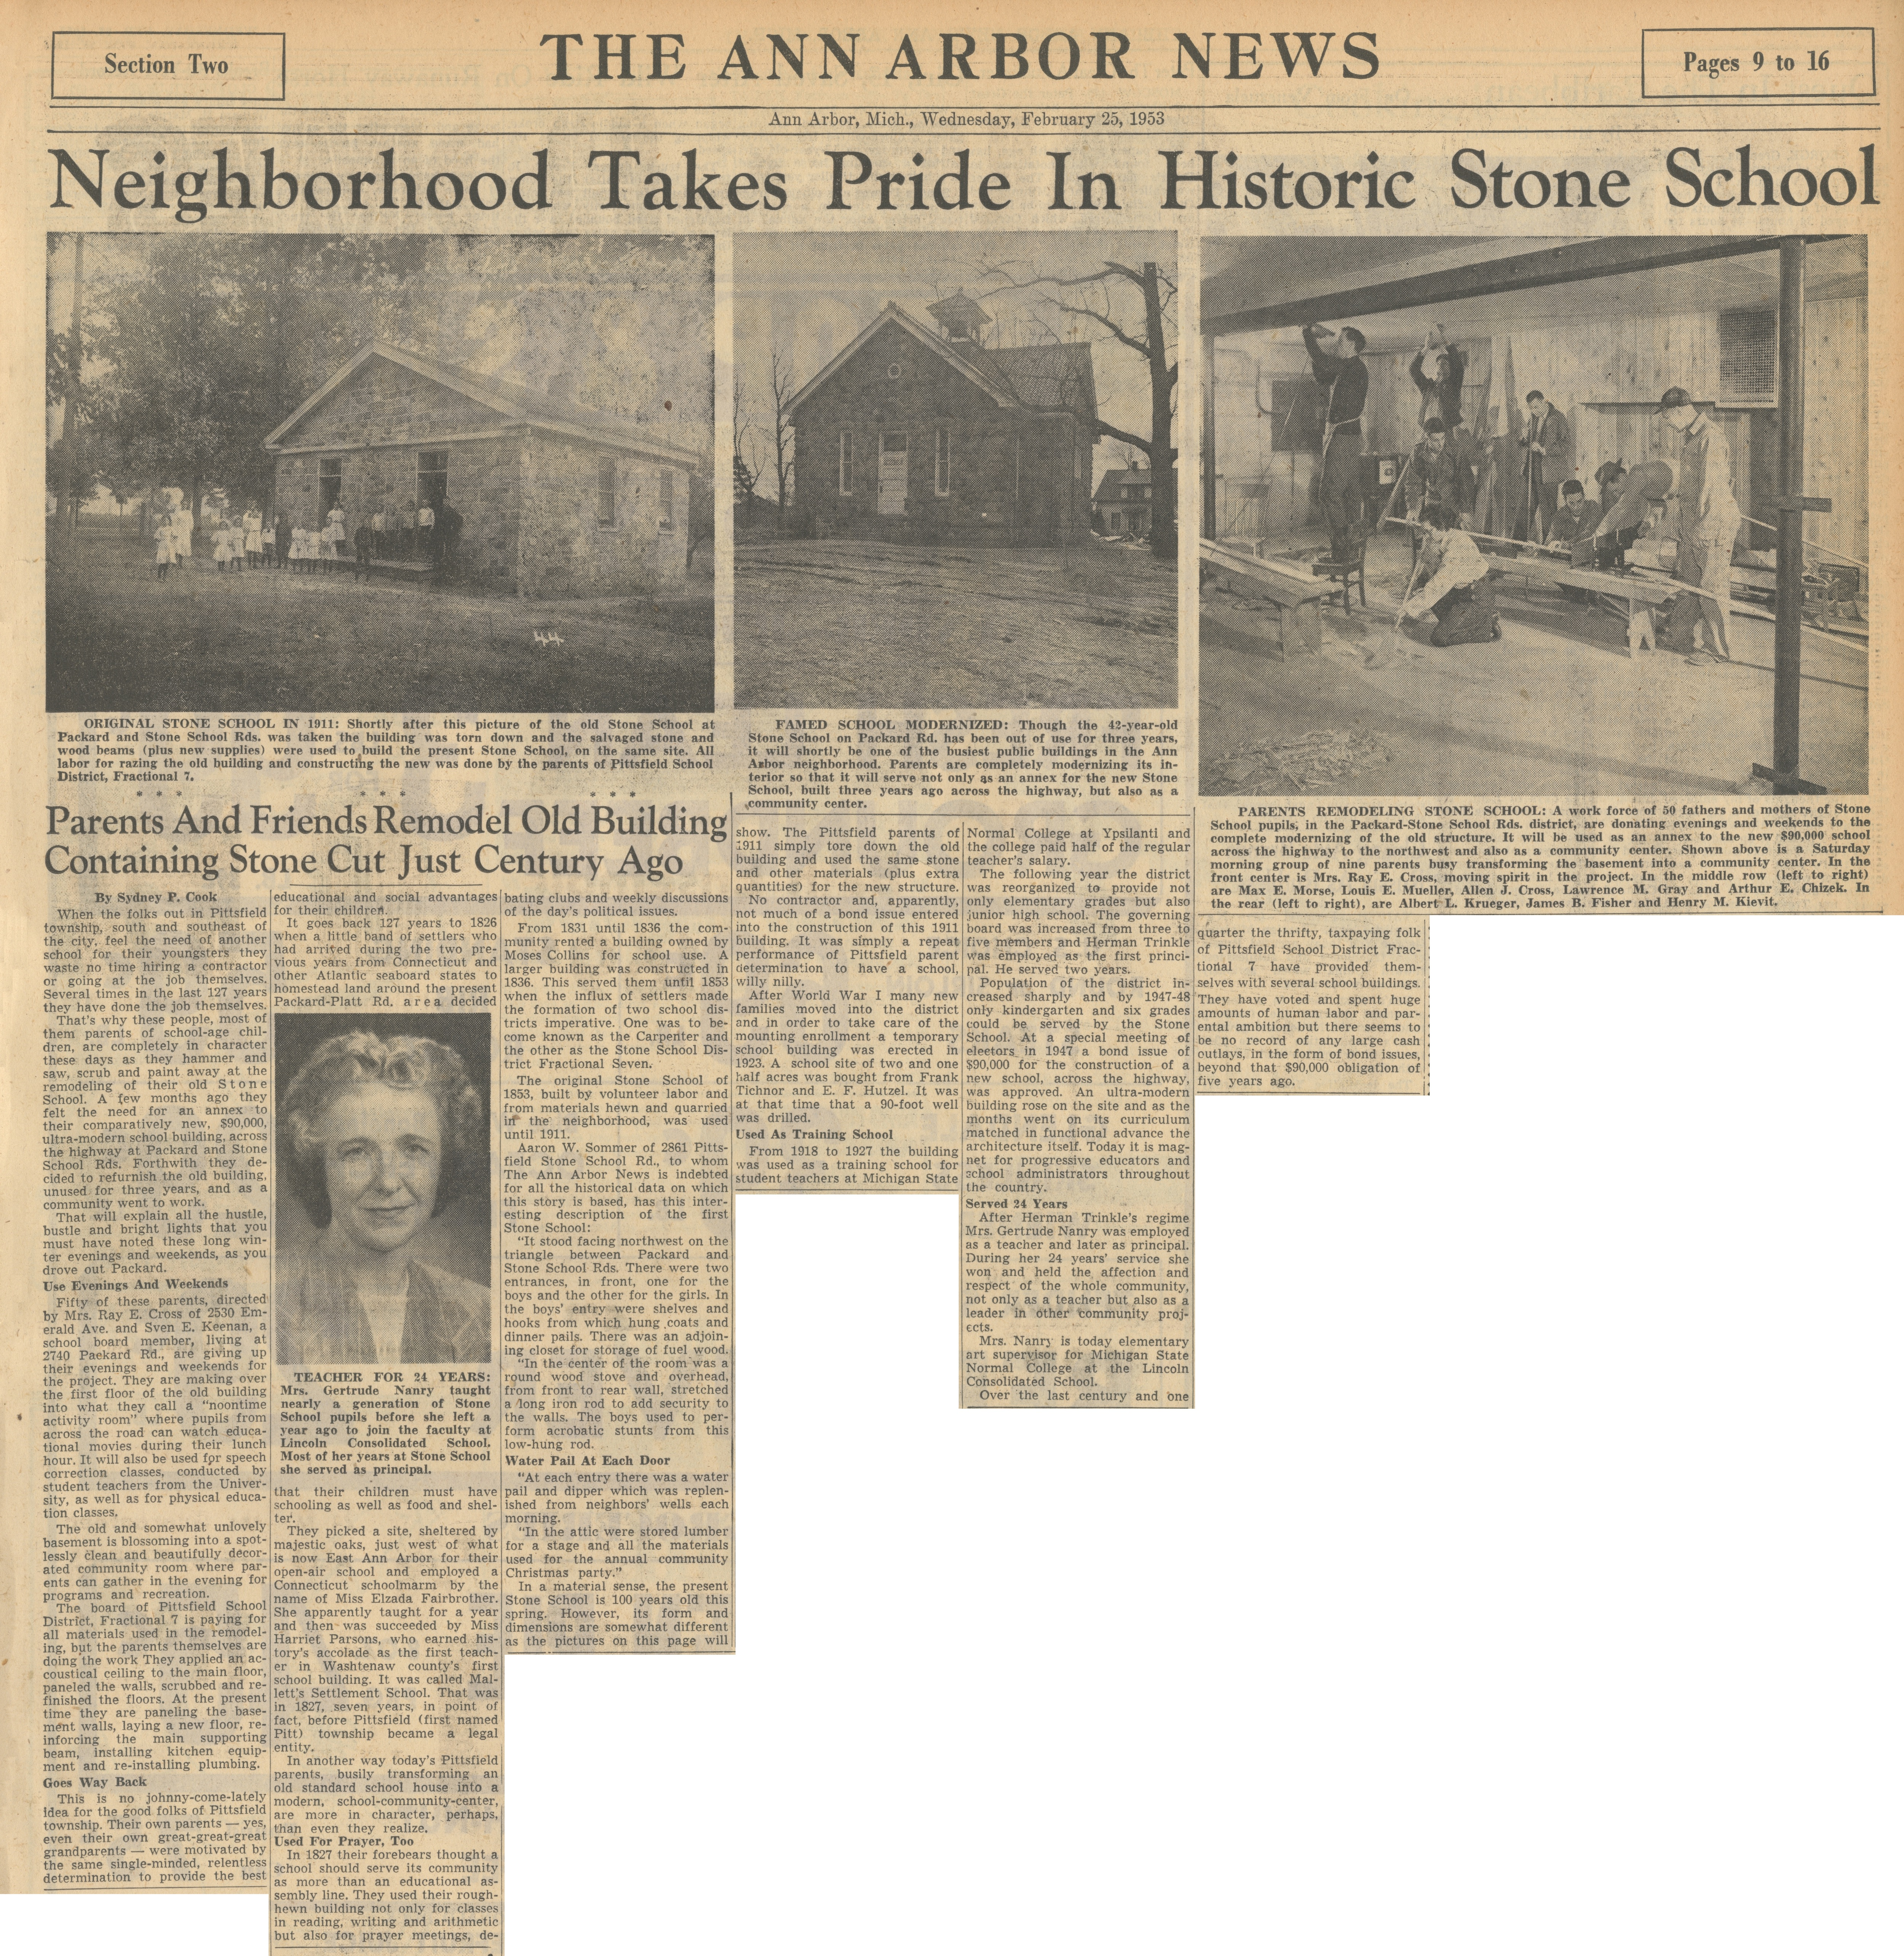 Neighborhood Takes Pride In Historic Stone School image